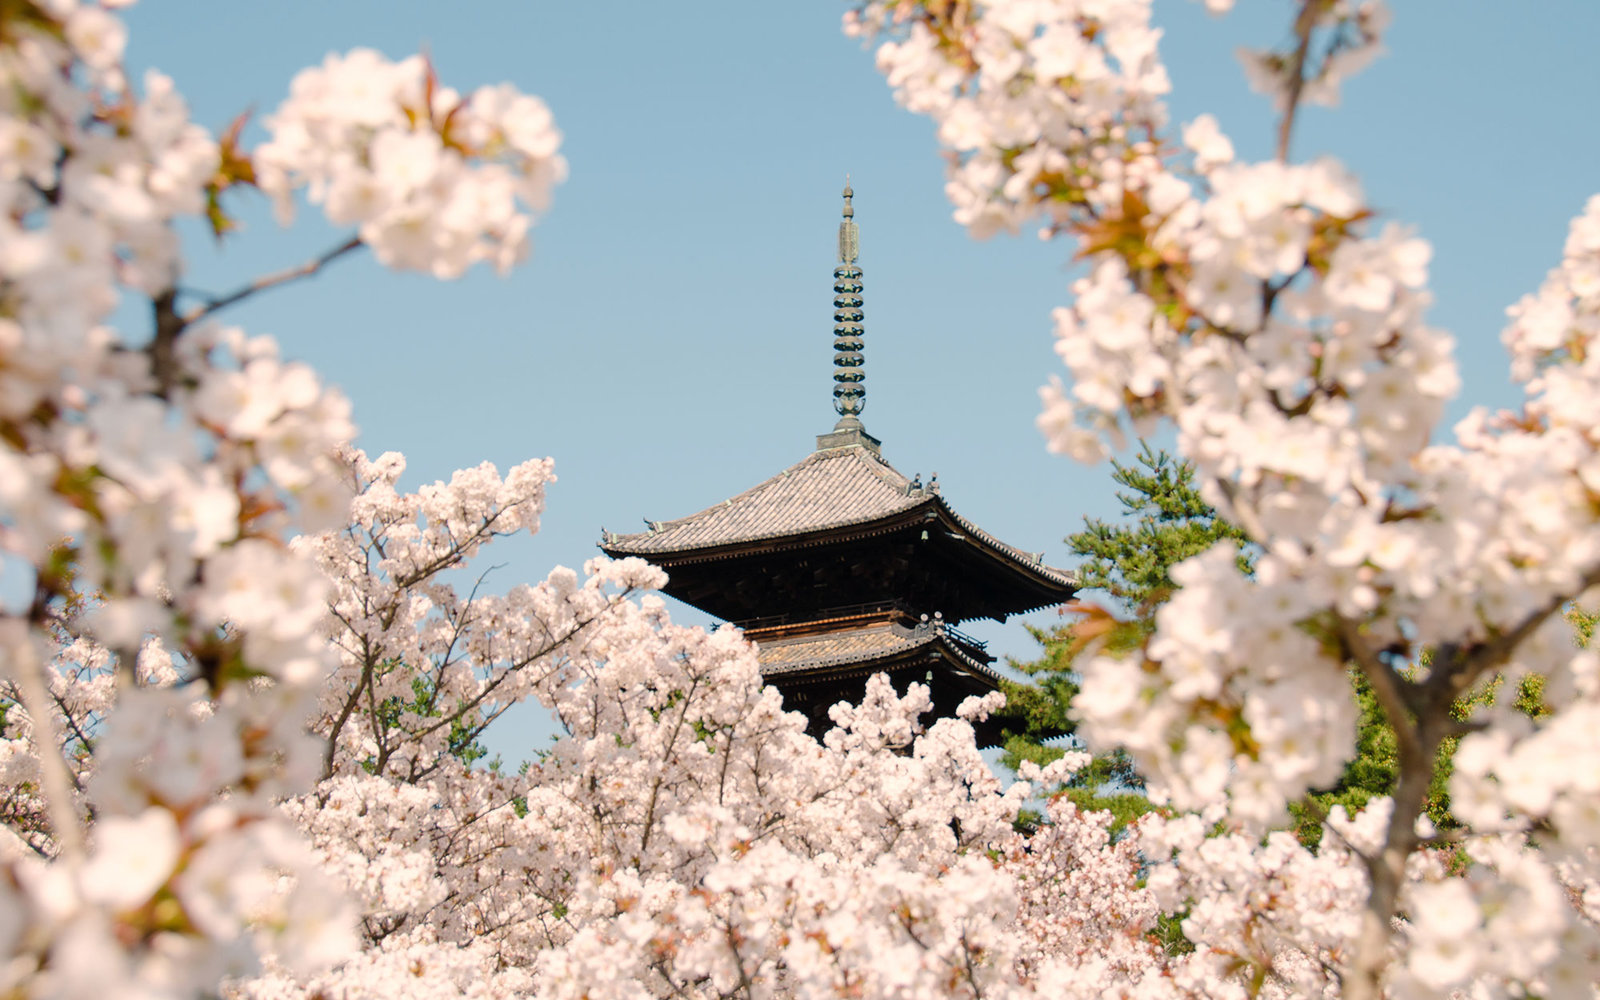 Ninnaji Temple w/ cherry blossoms in bloom, Kyoto